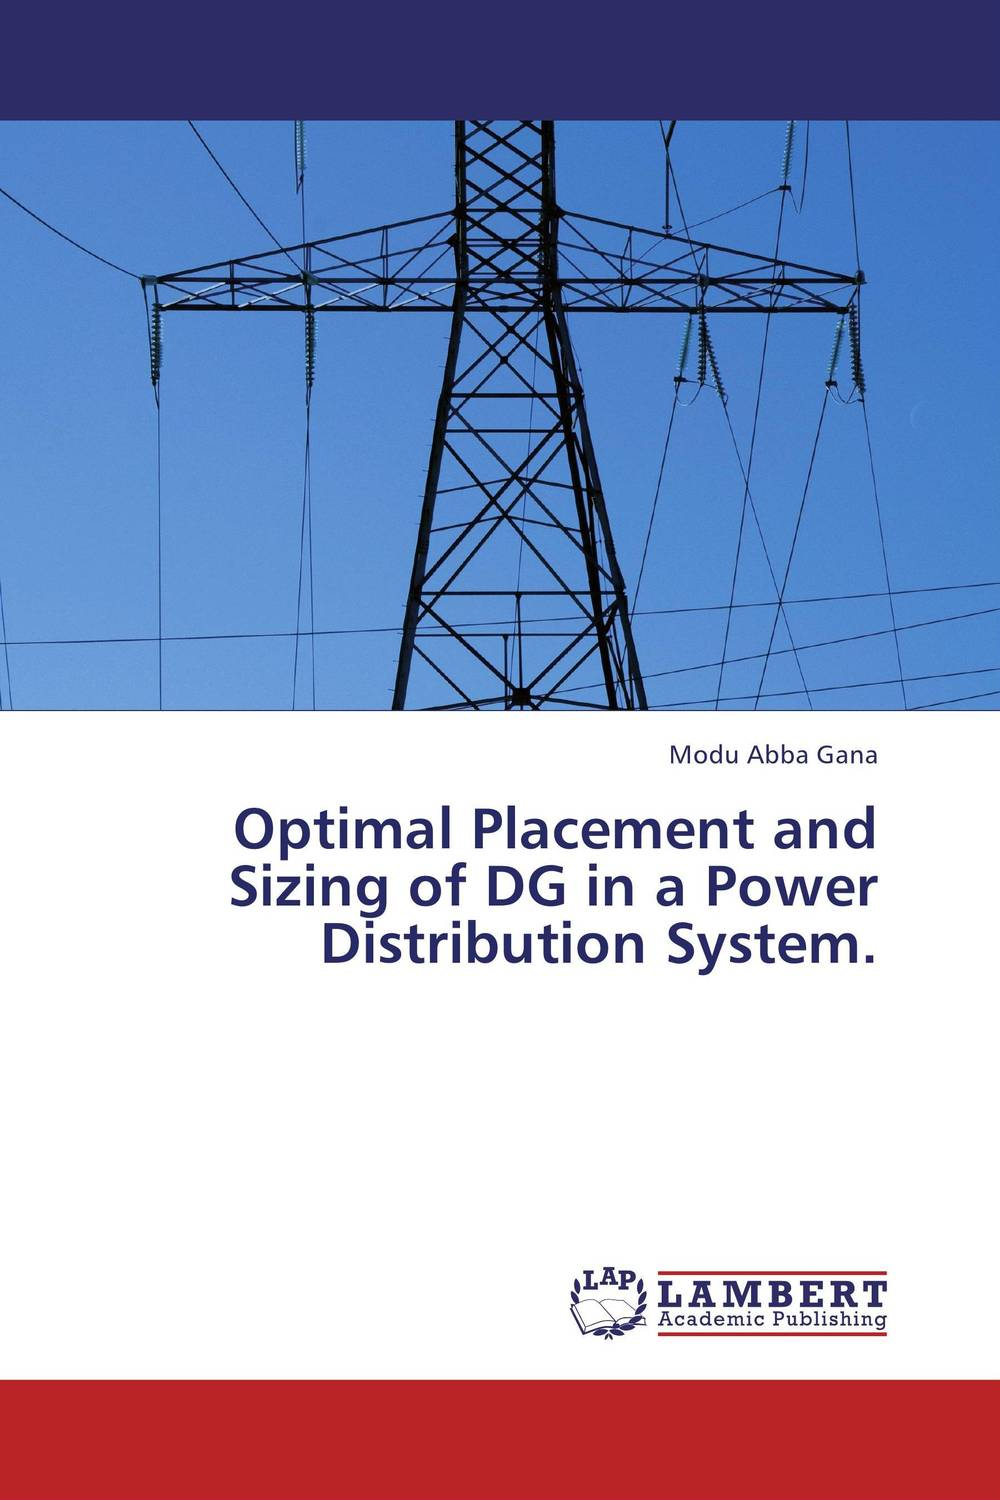 Optimal Placement and Sizing of DG in a Power Distribution System optimal and efficient motion planning of redundant robot manipulators